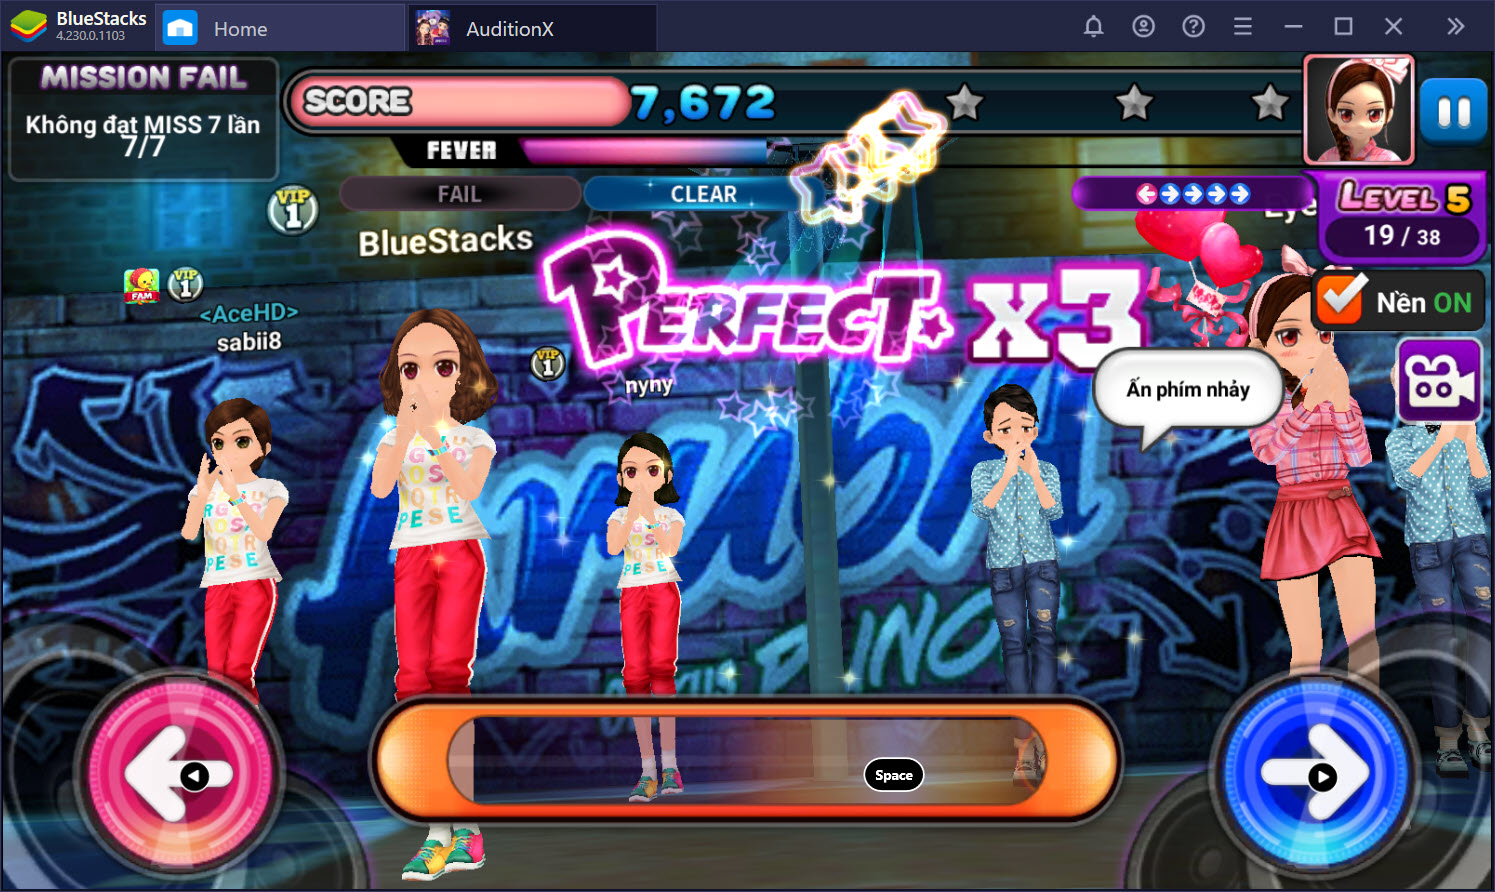 Thiết lập Game Controls nhảy 2K, 4K trong Audition X